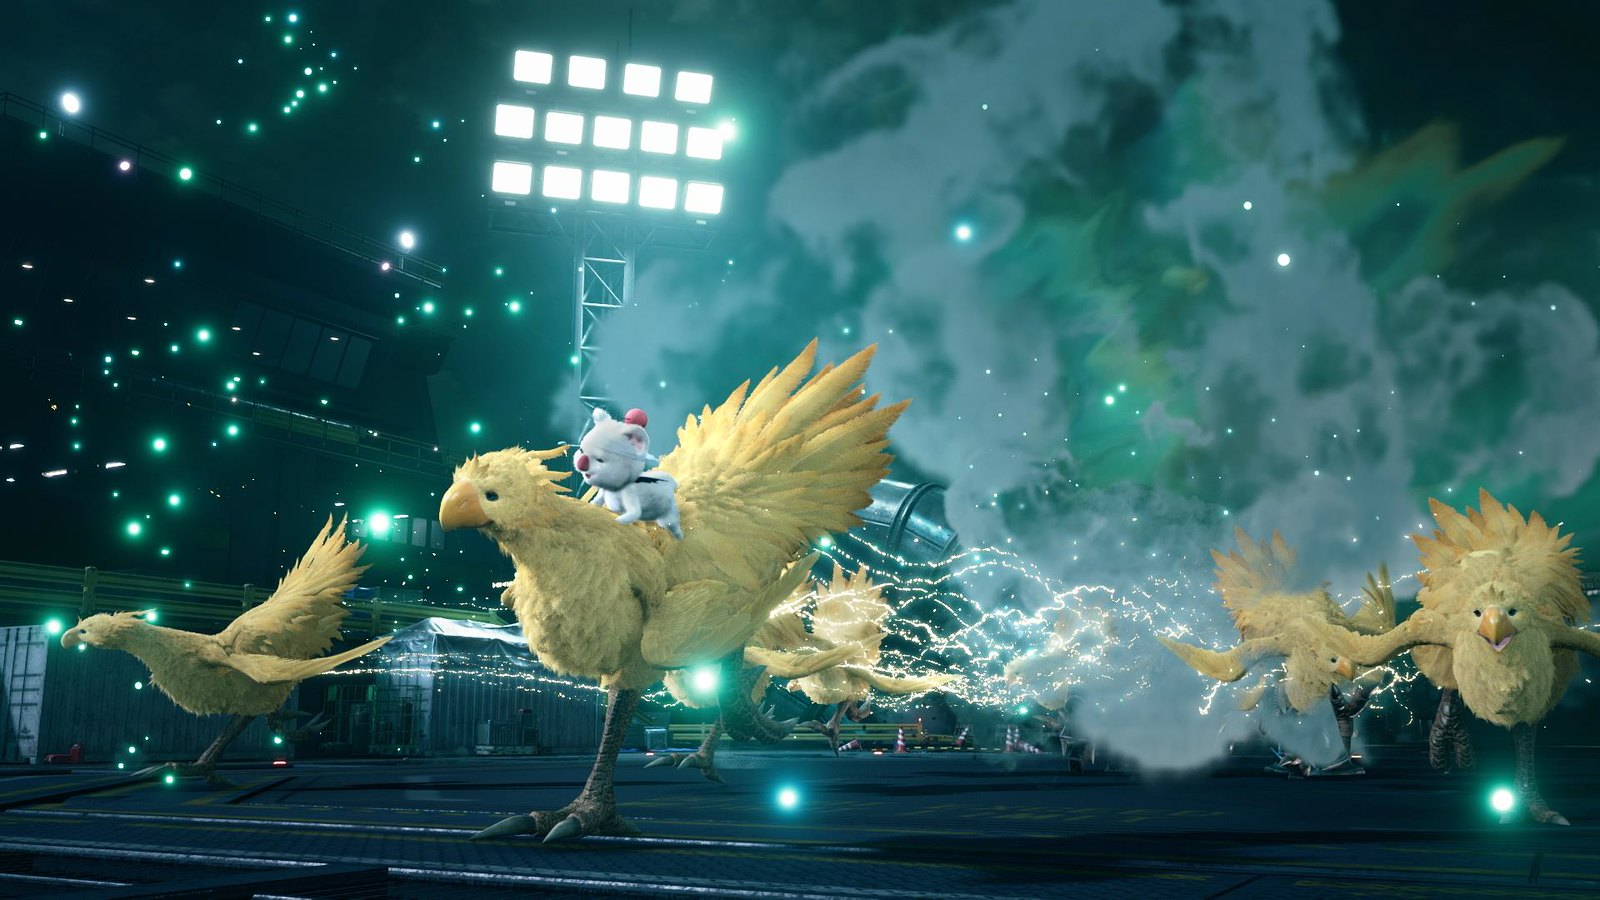 Final Fantasy VII Remake - Chocobo & Moogle Summon